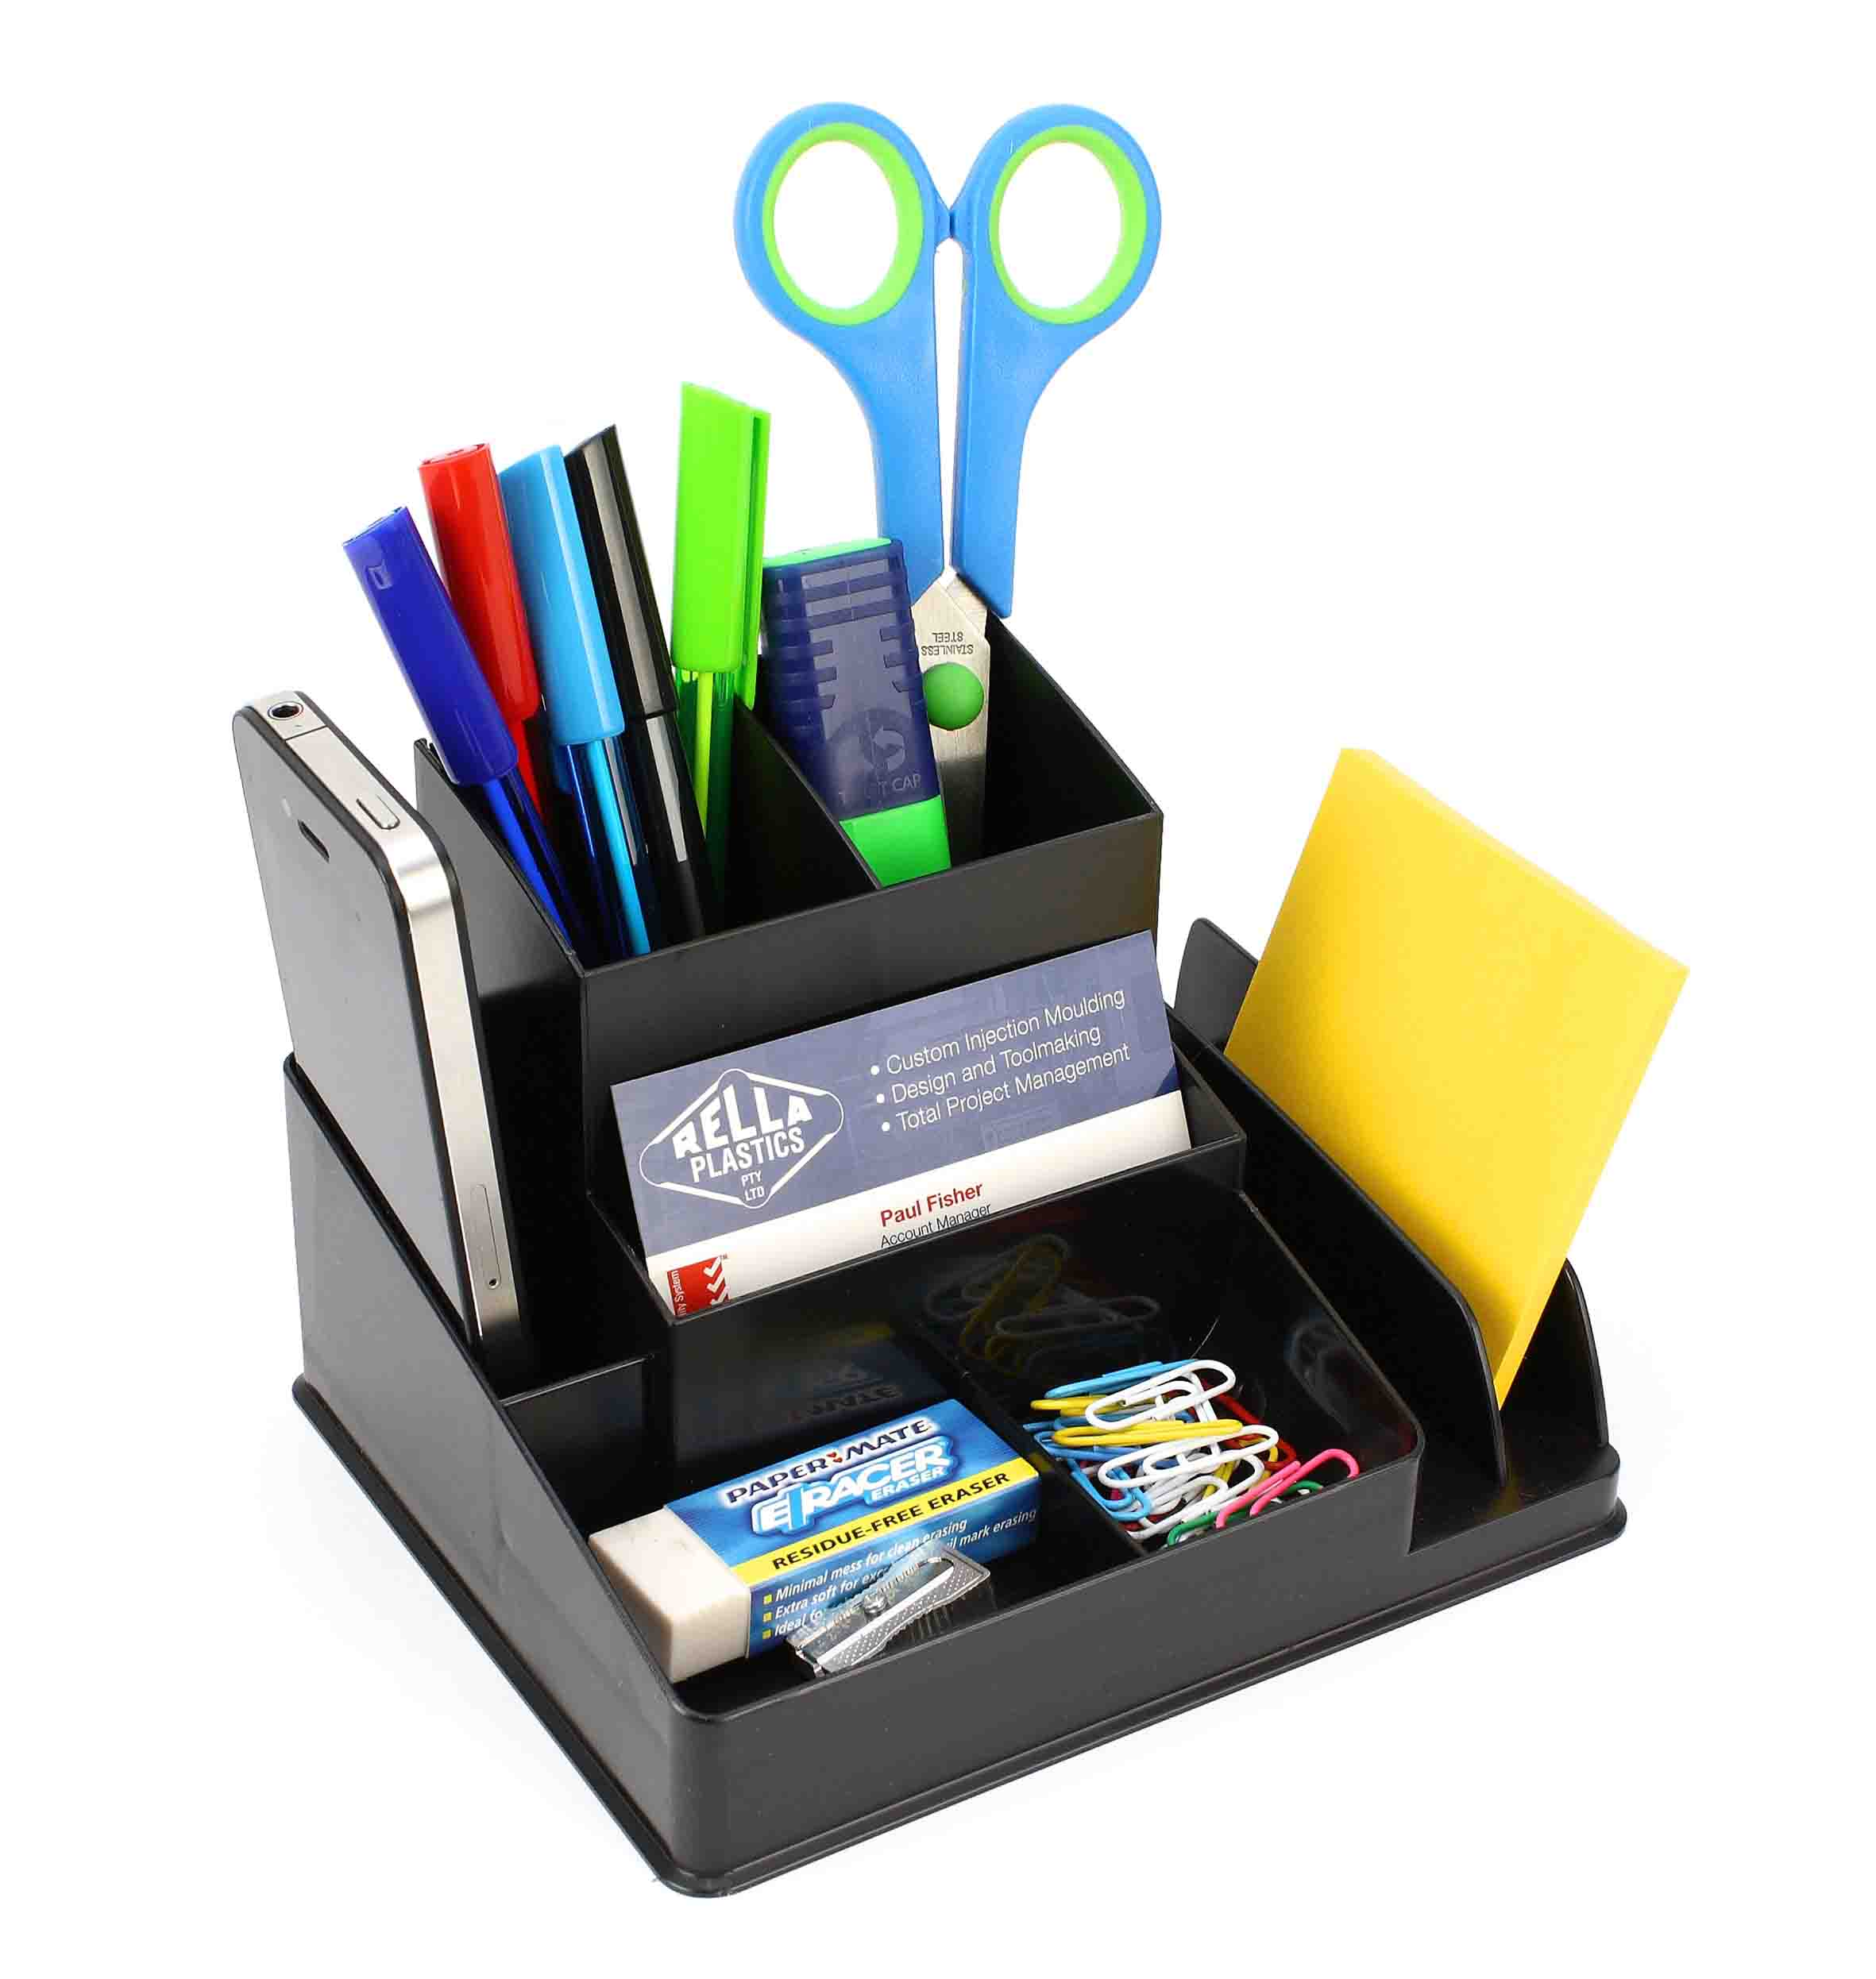 Cookie warning - Desk stationery organiser ...